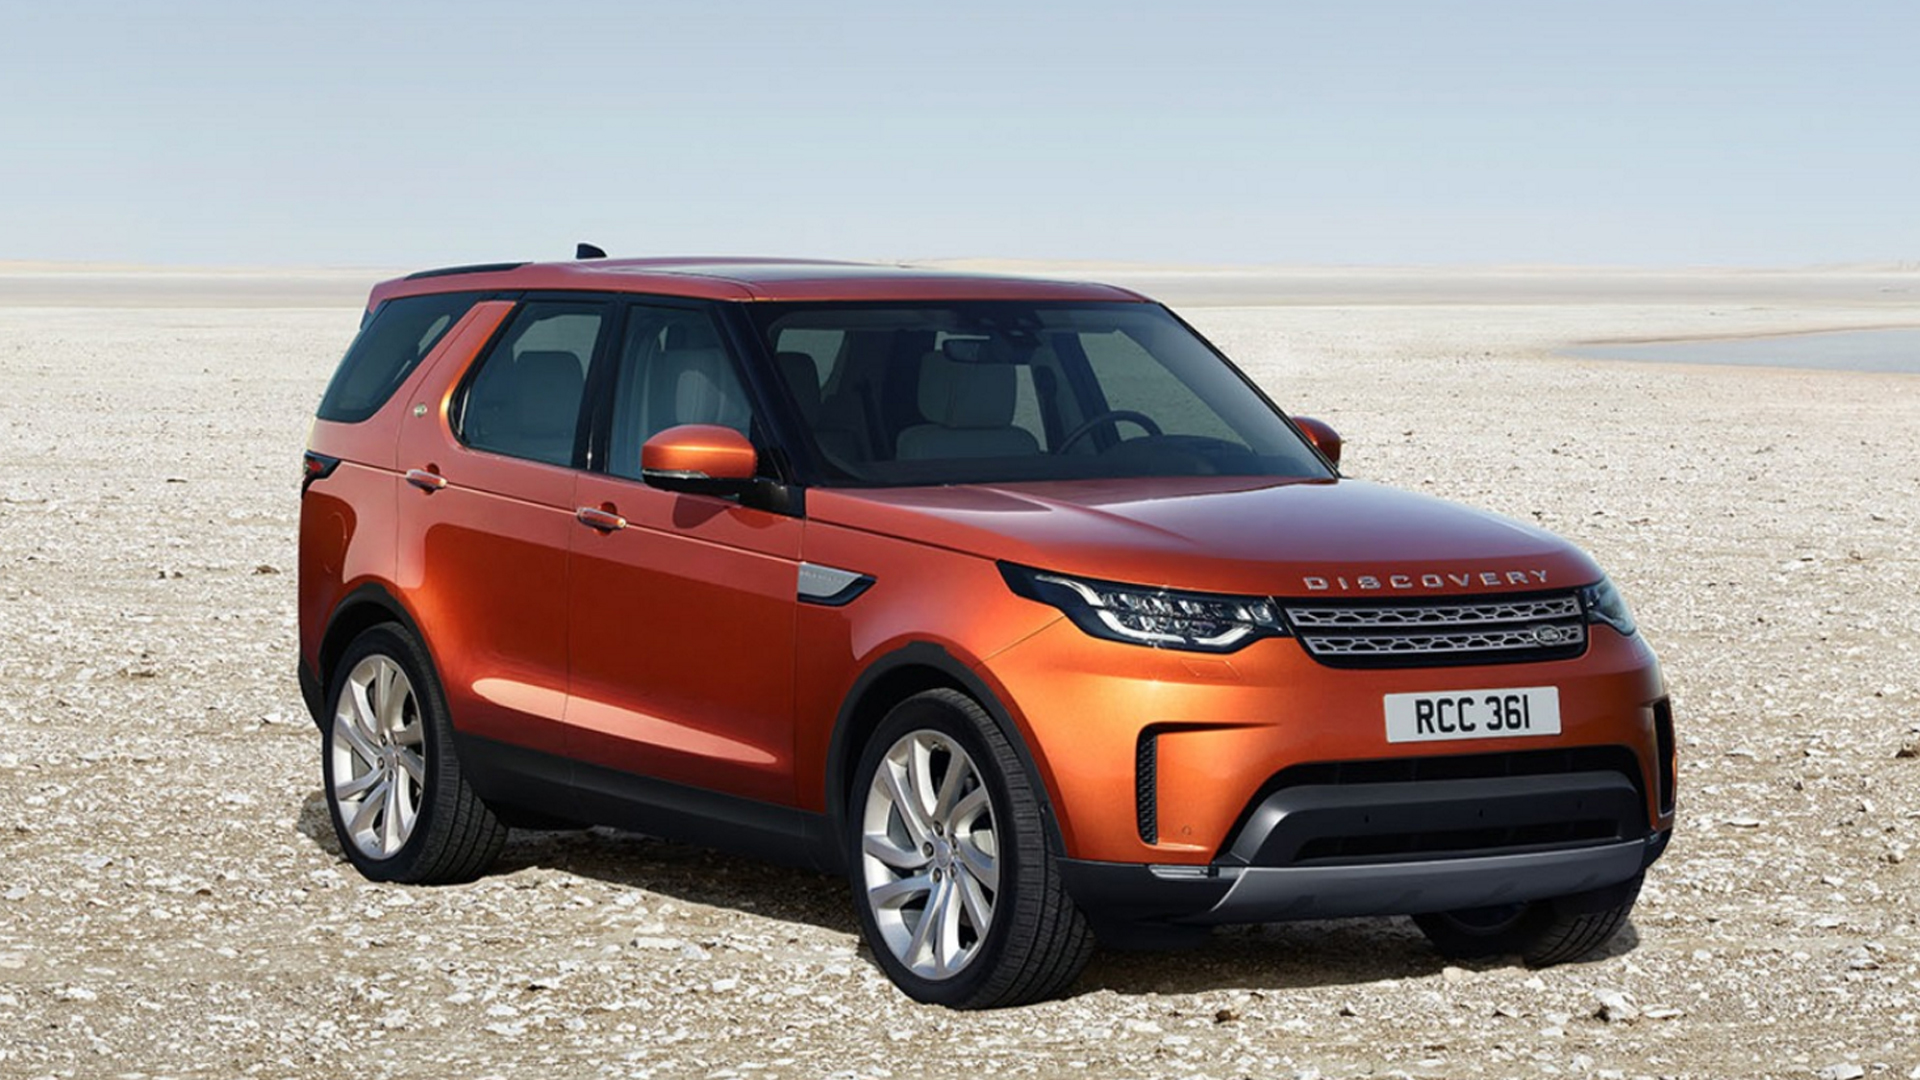 Land Rover Discovery 2017 Diesel First Edition Exterior Car s